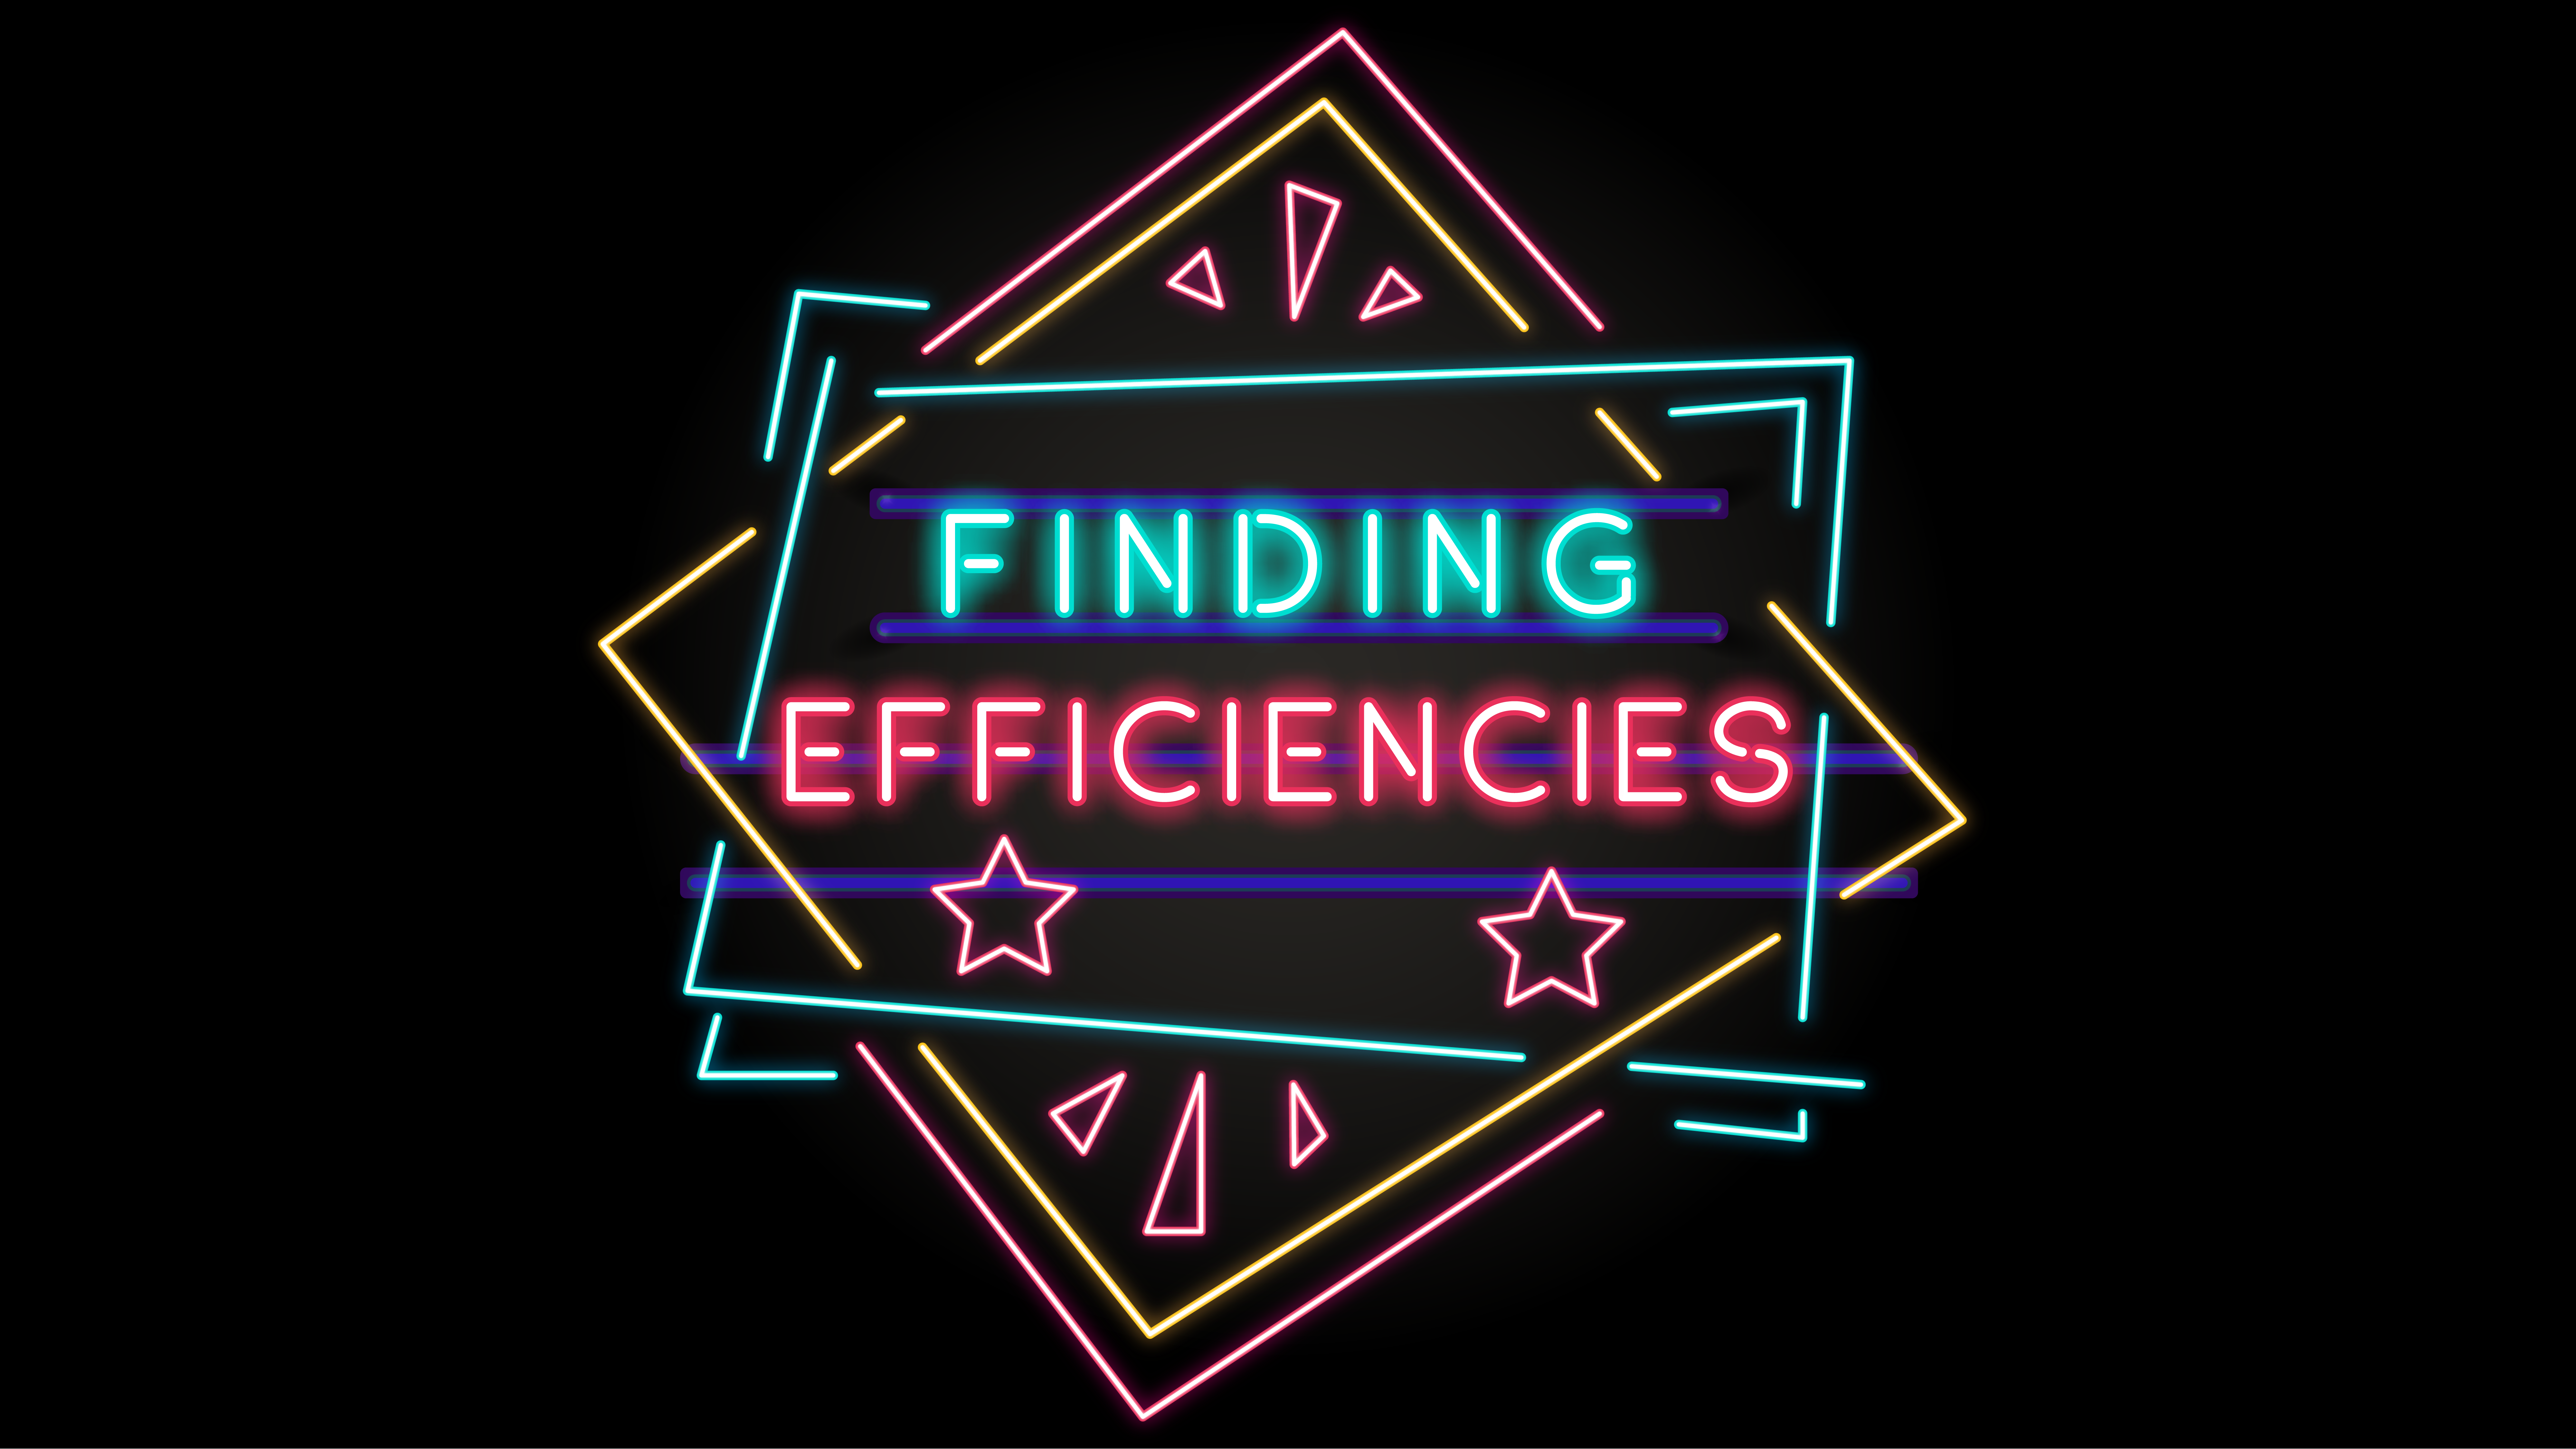 Drinks Well with Operations (E2) Finding Efficiencies